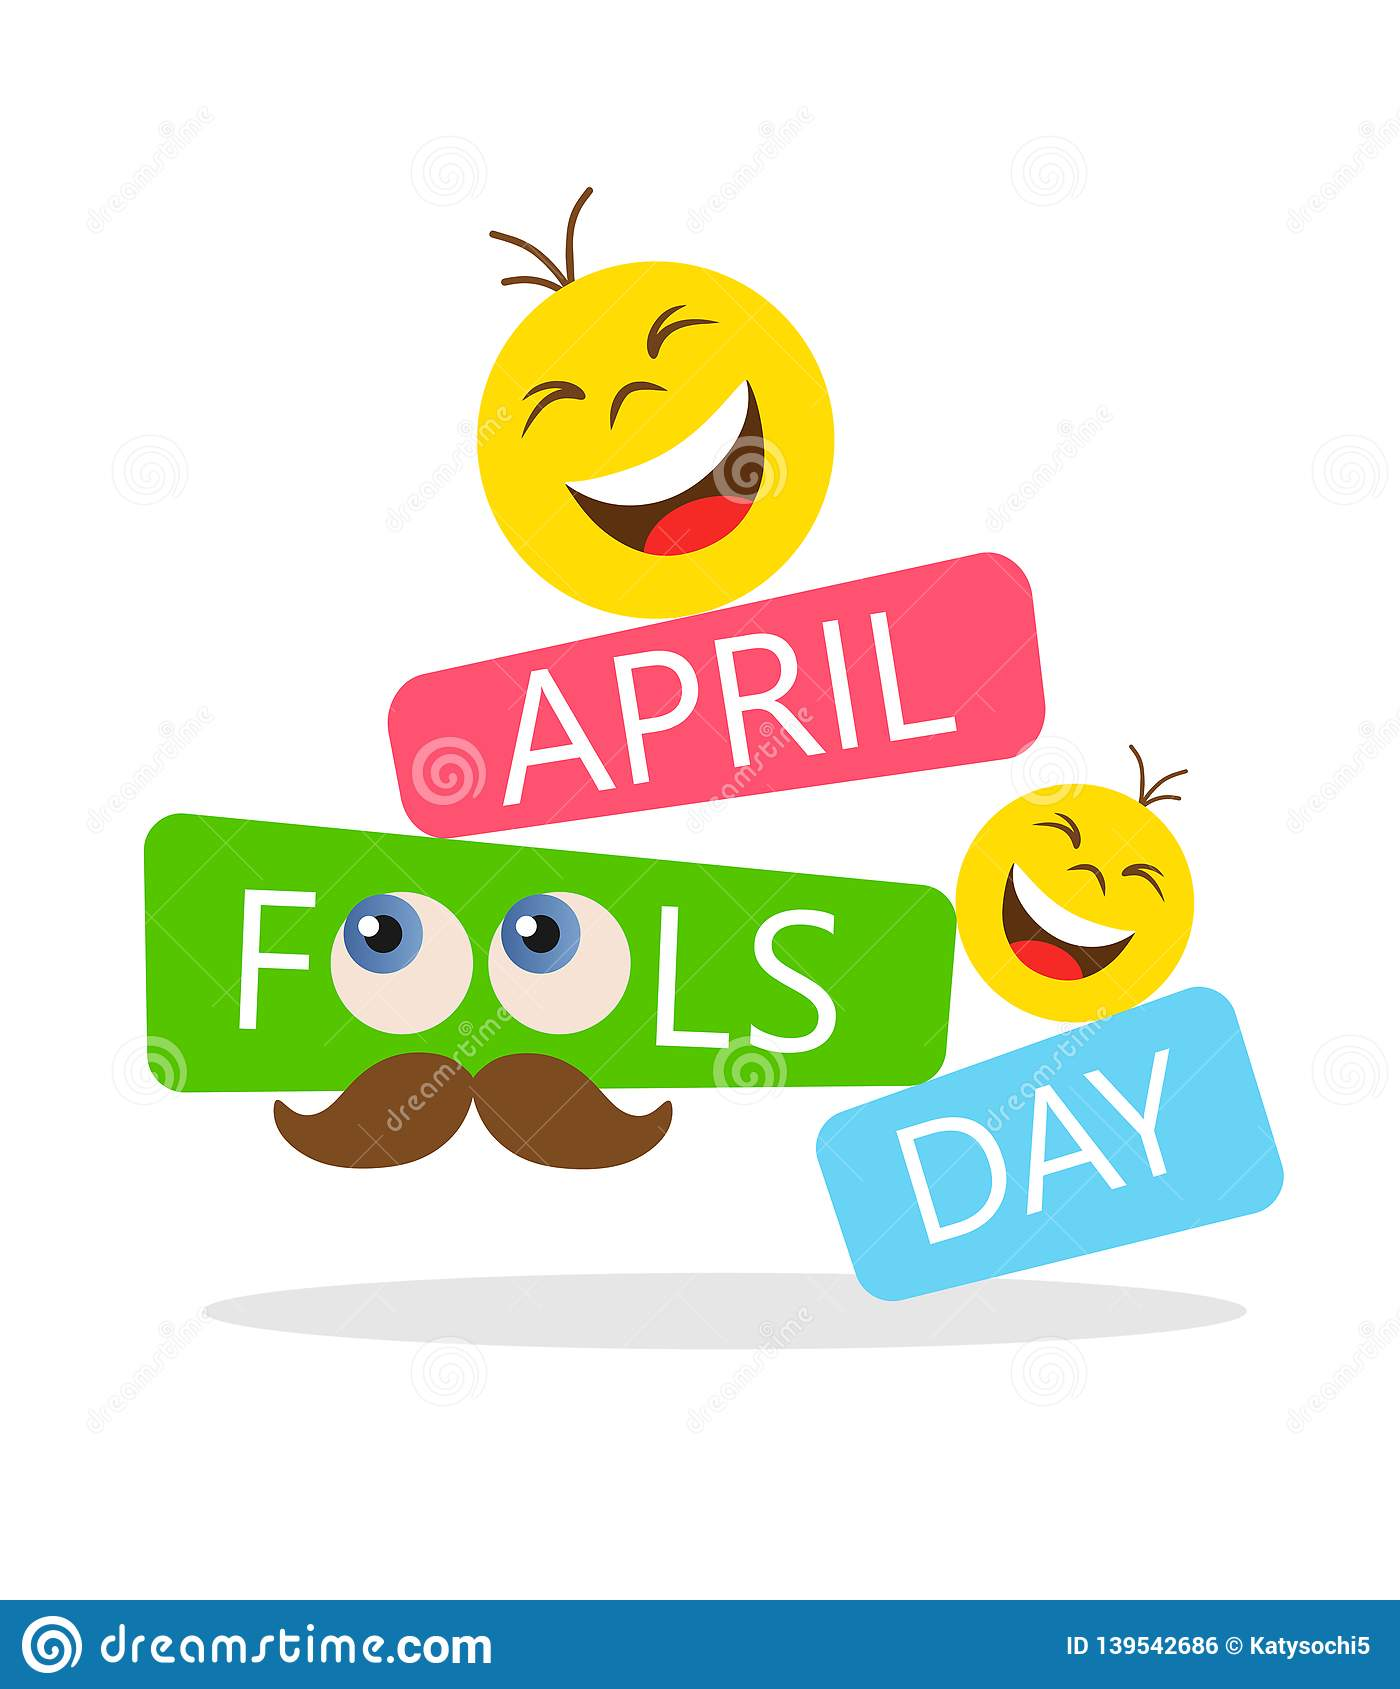 April Fools Day Card With Happy Face Emojis On White Background. Bright  Vector Illustration Stock Vector - Illustration of poster, mustache:  139542686